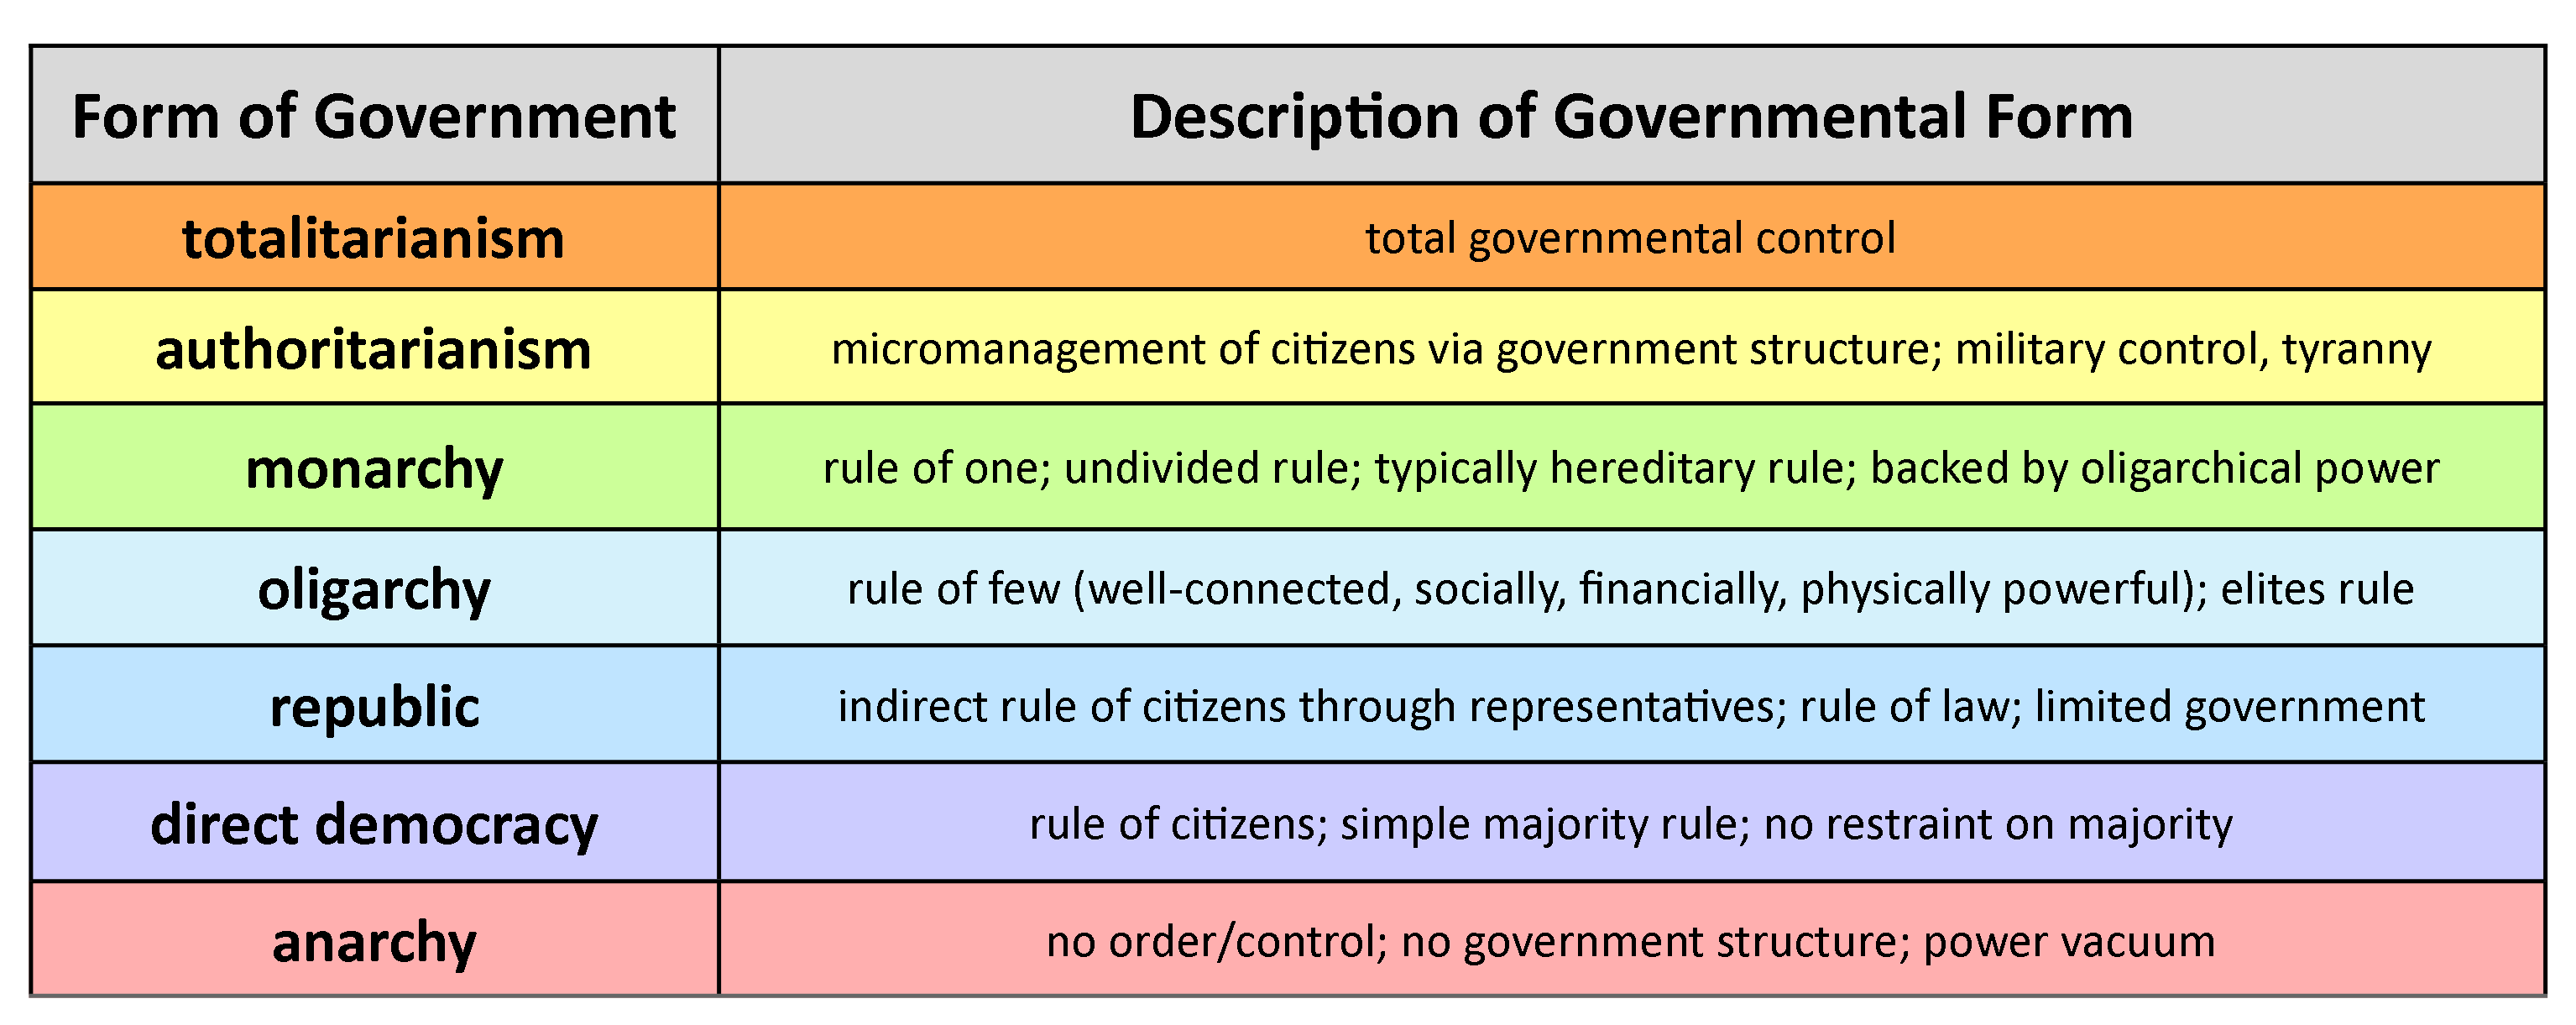 United States Government: Why form a government? | United States ...